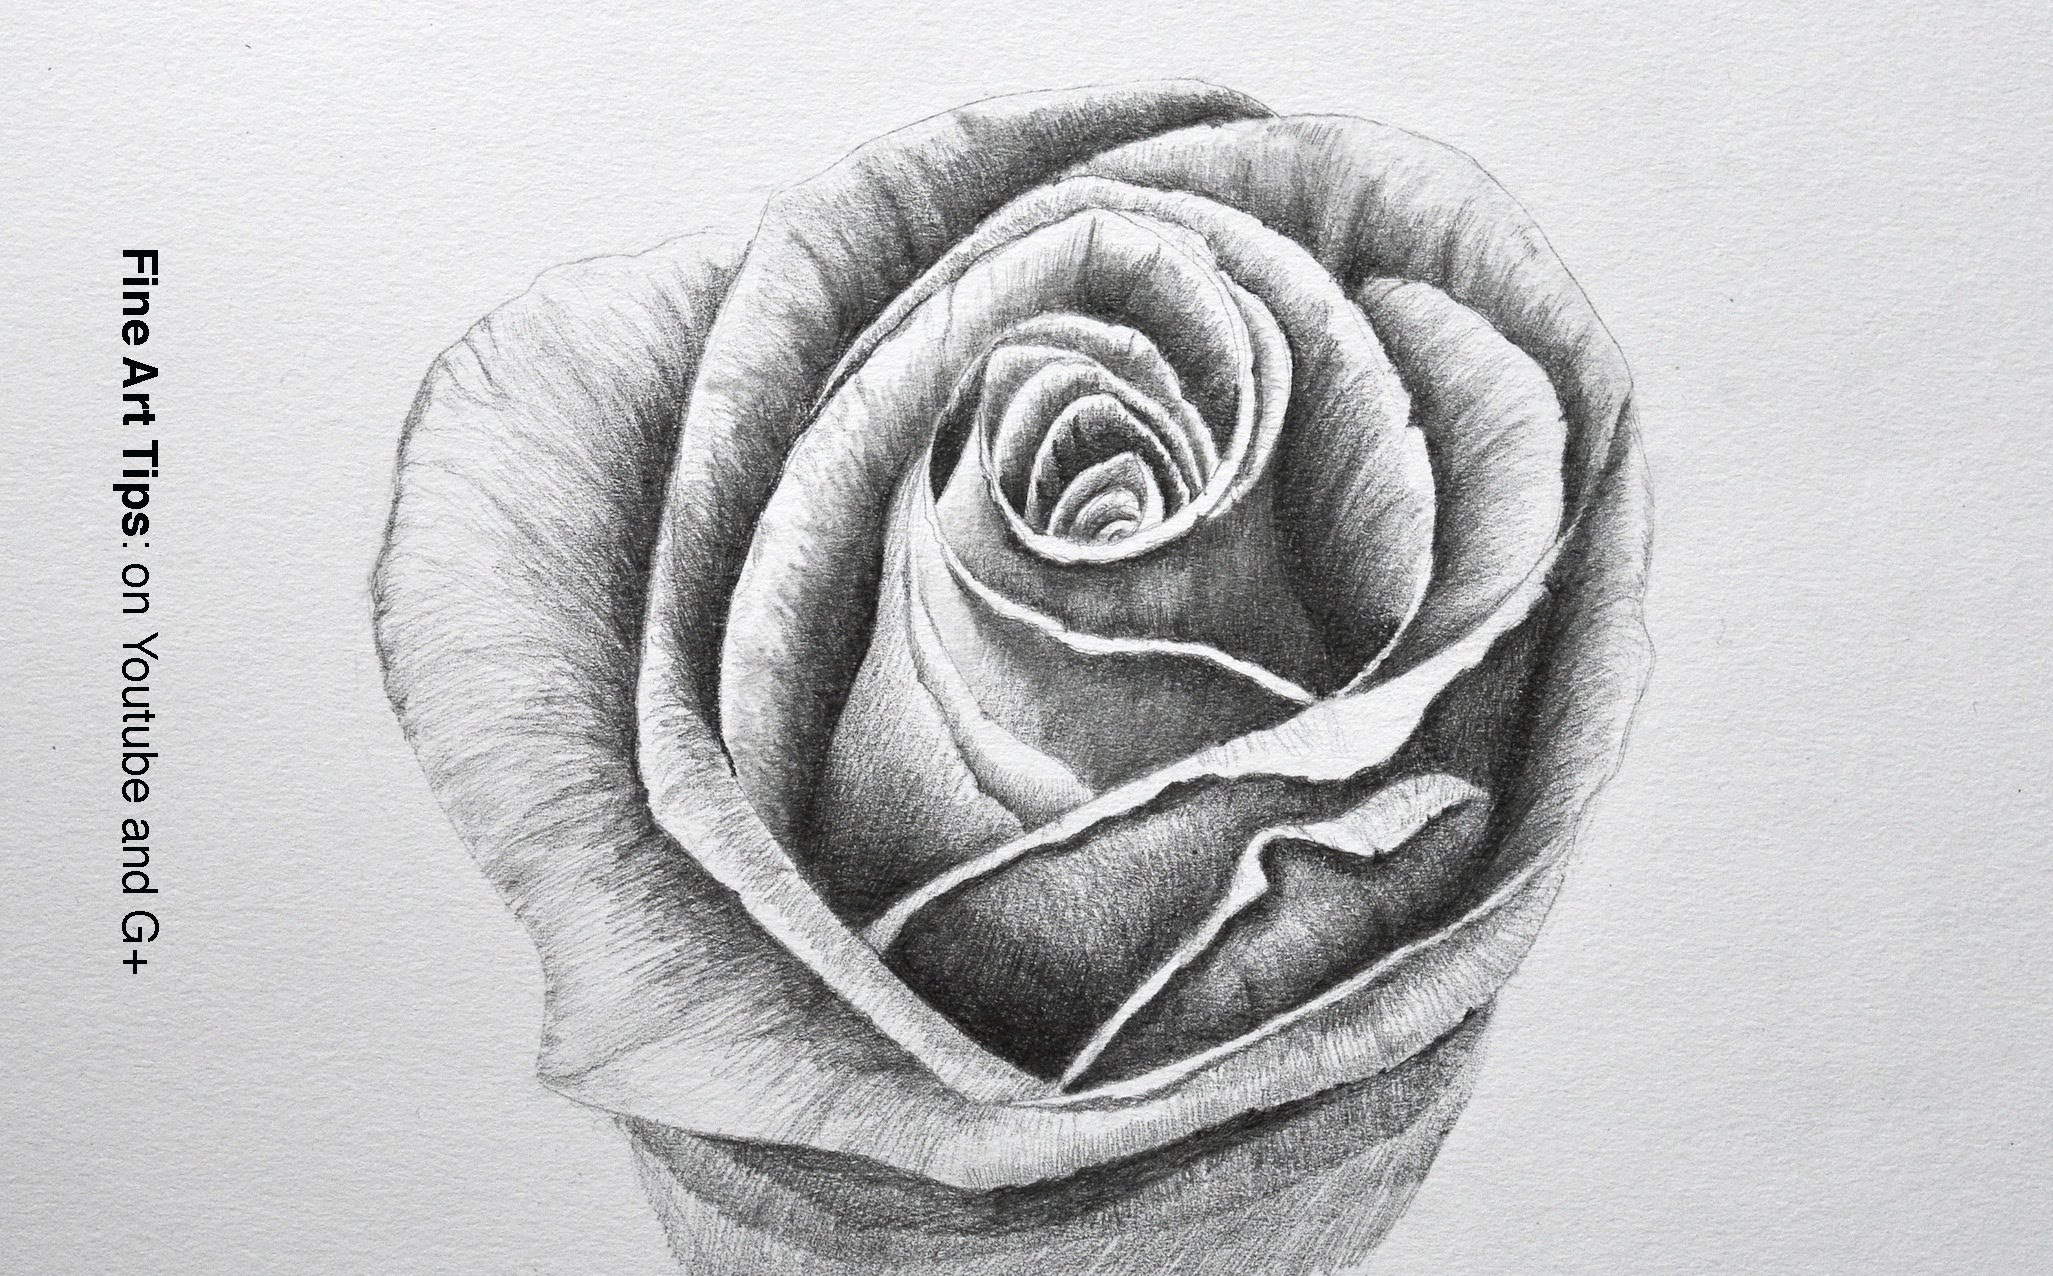 Drawn rose pencil for kid Unsubscribe Tips Flowers: Draw a